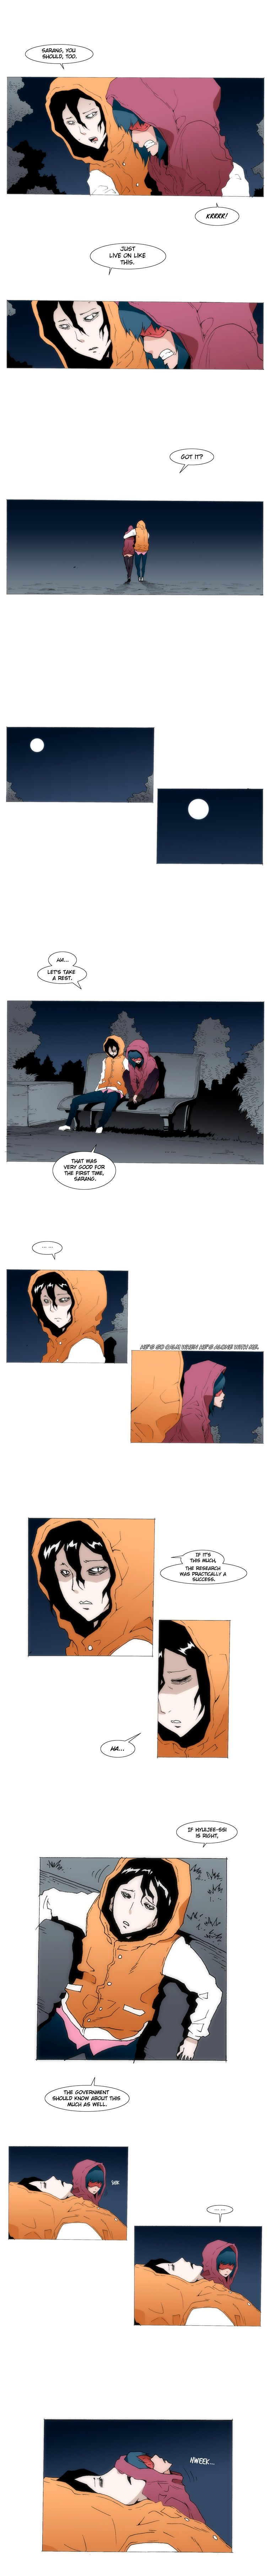 Trace 1.5 15 Page 2